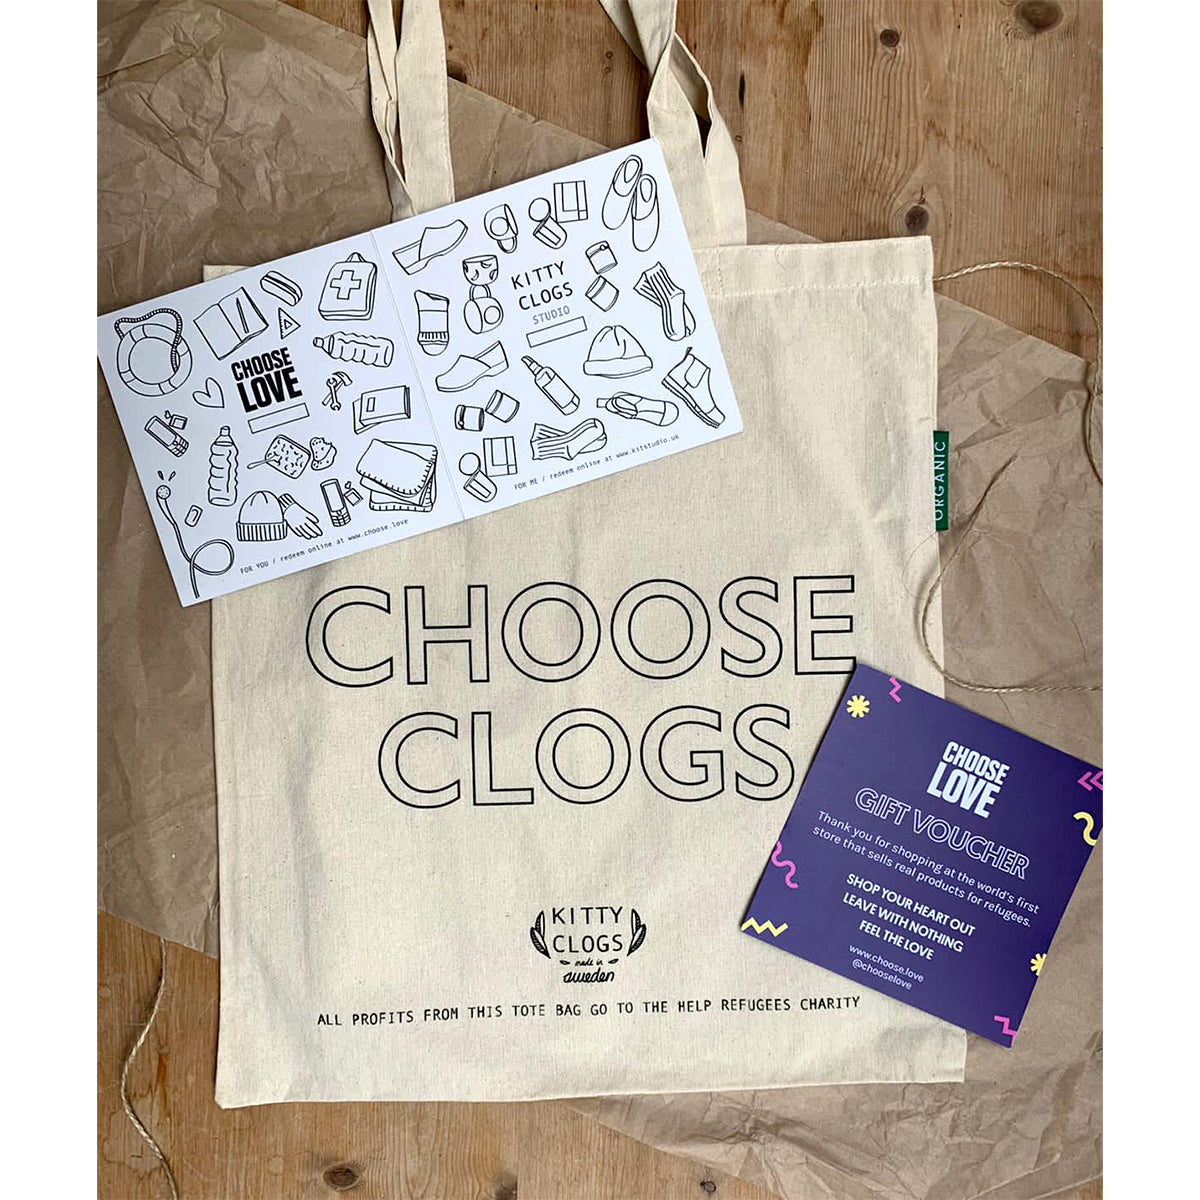 the giver gift set with gift voucher for Kitty Clogs and for a refugee through Choose Love, comes in a CHOOSE CLOGS tote bag